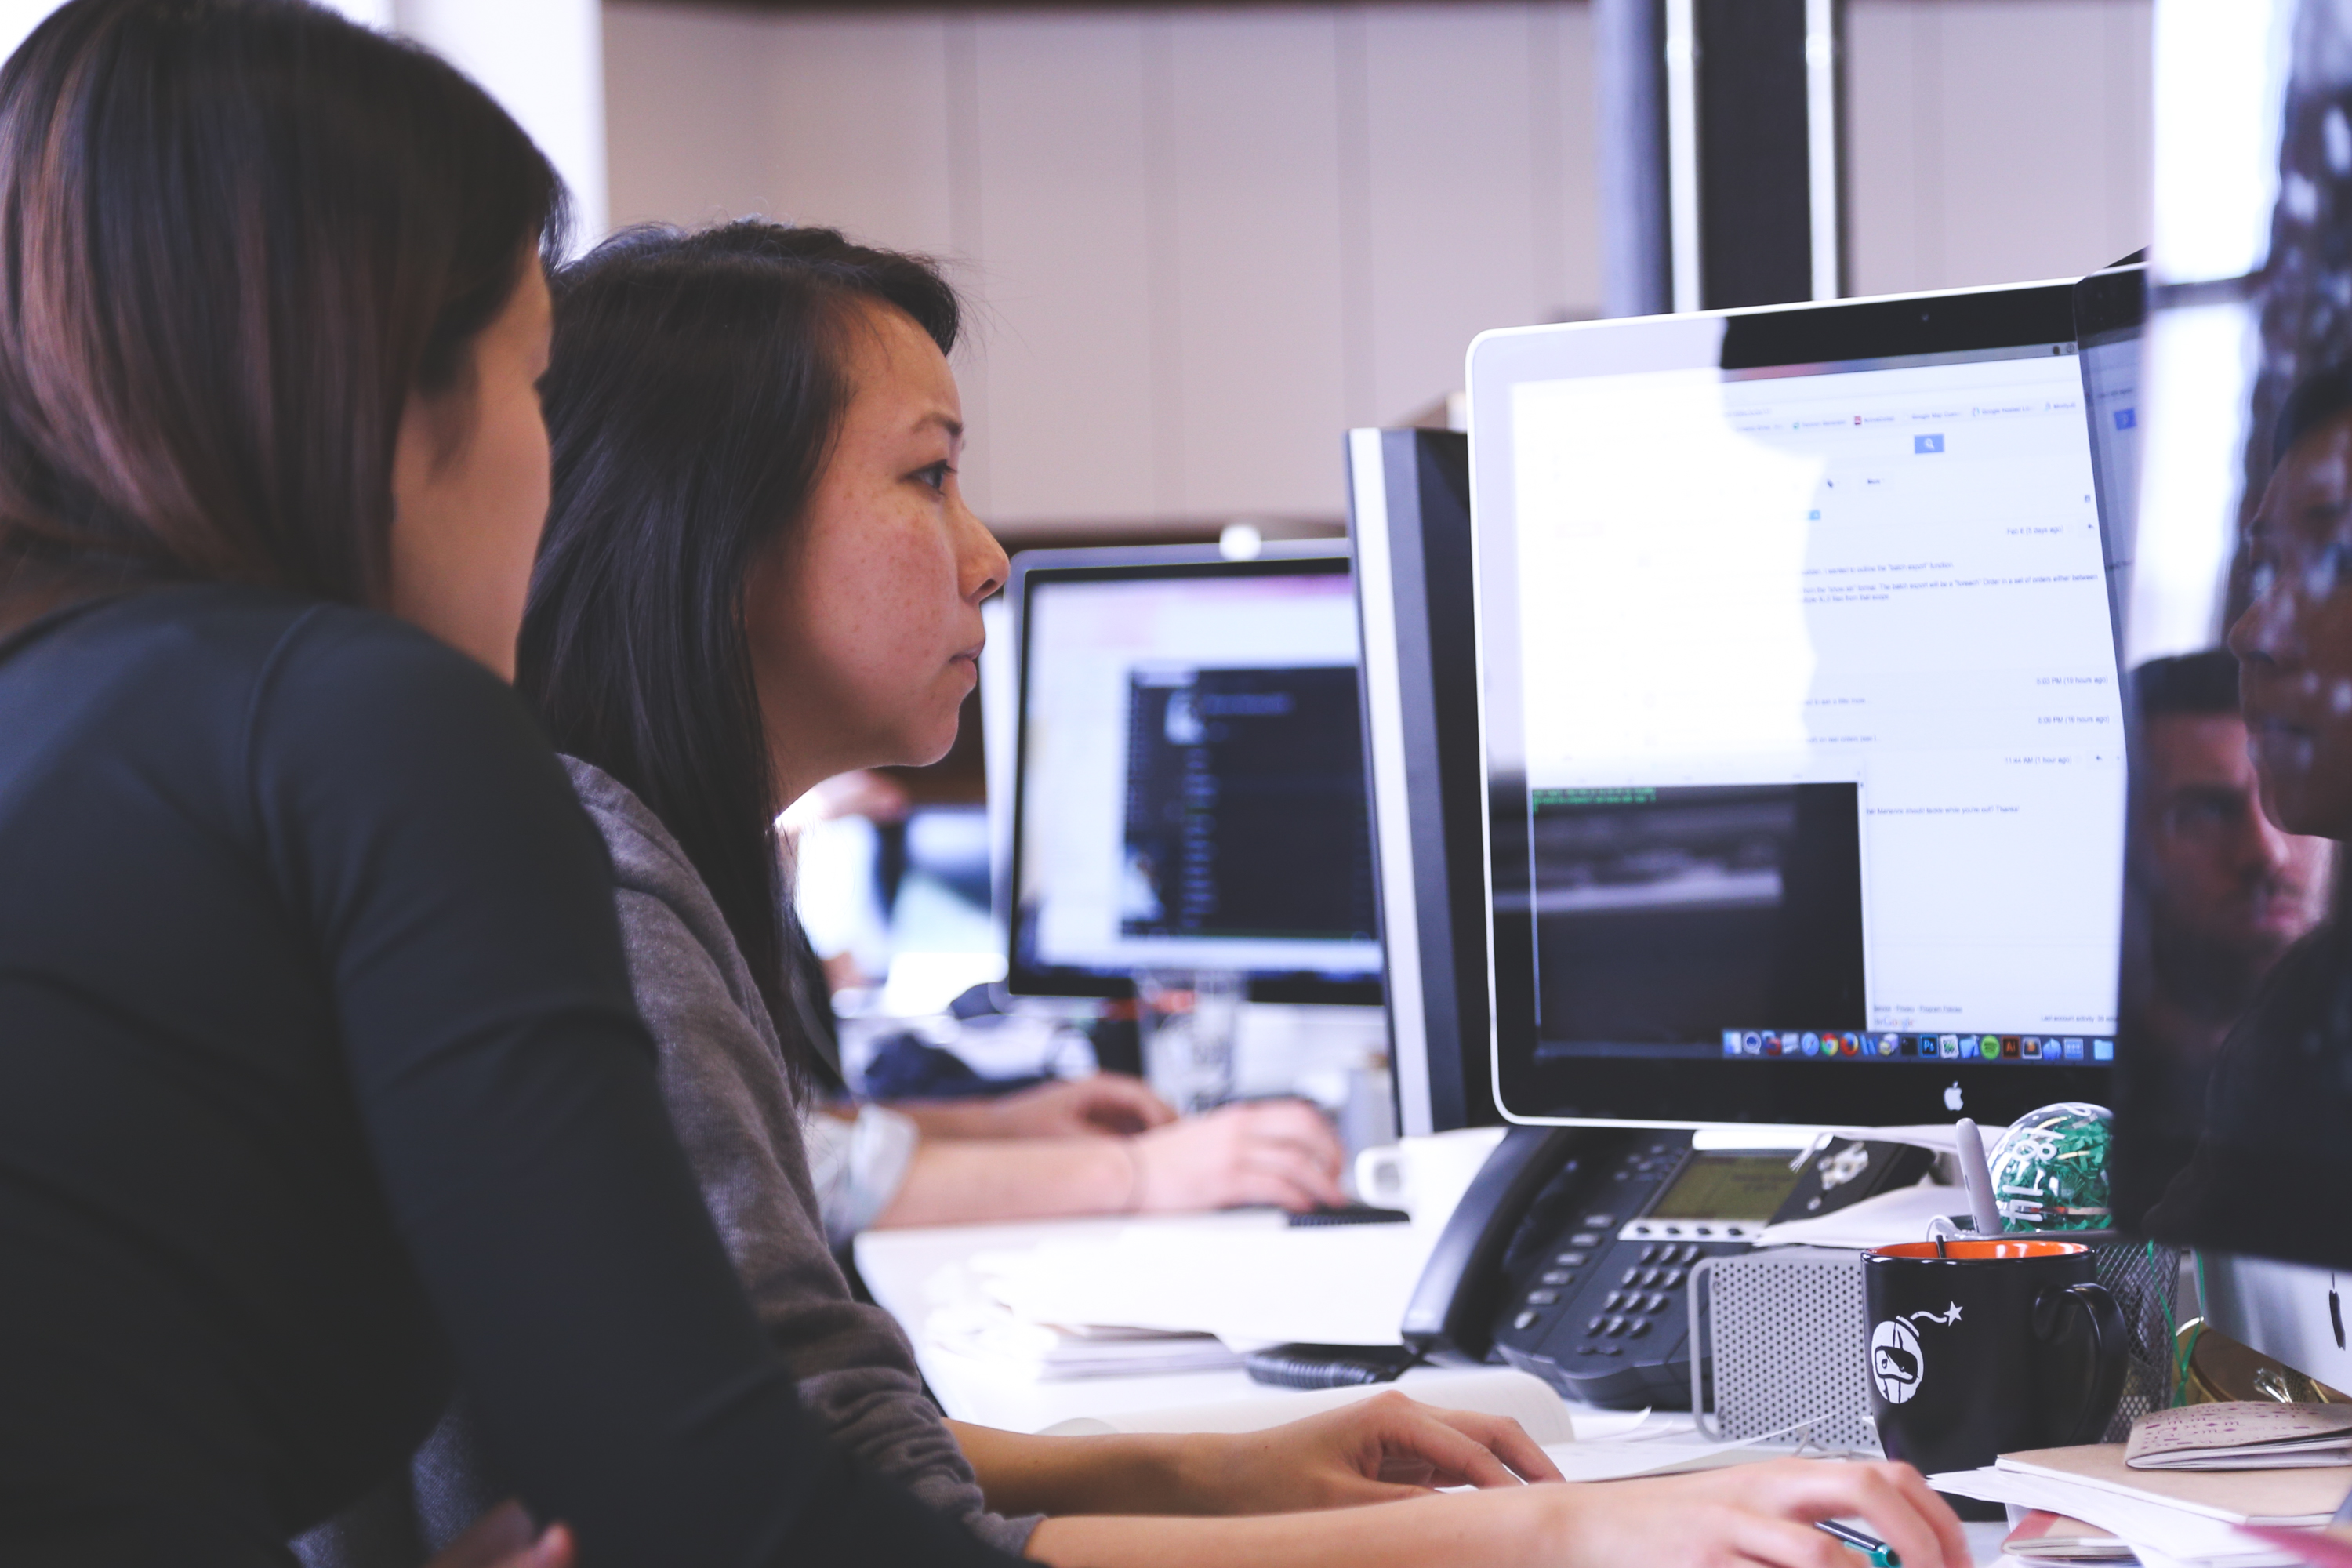 A woman helping a fellow coworker whil she works on a computer